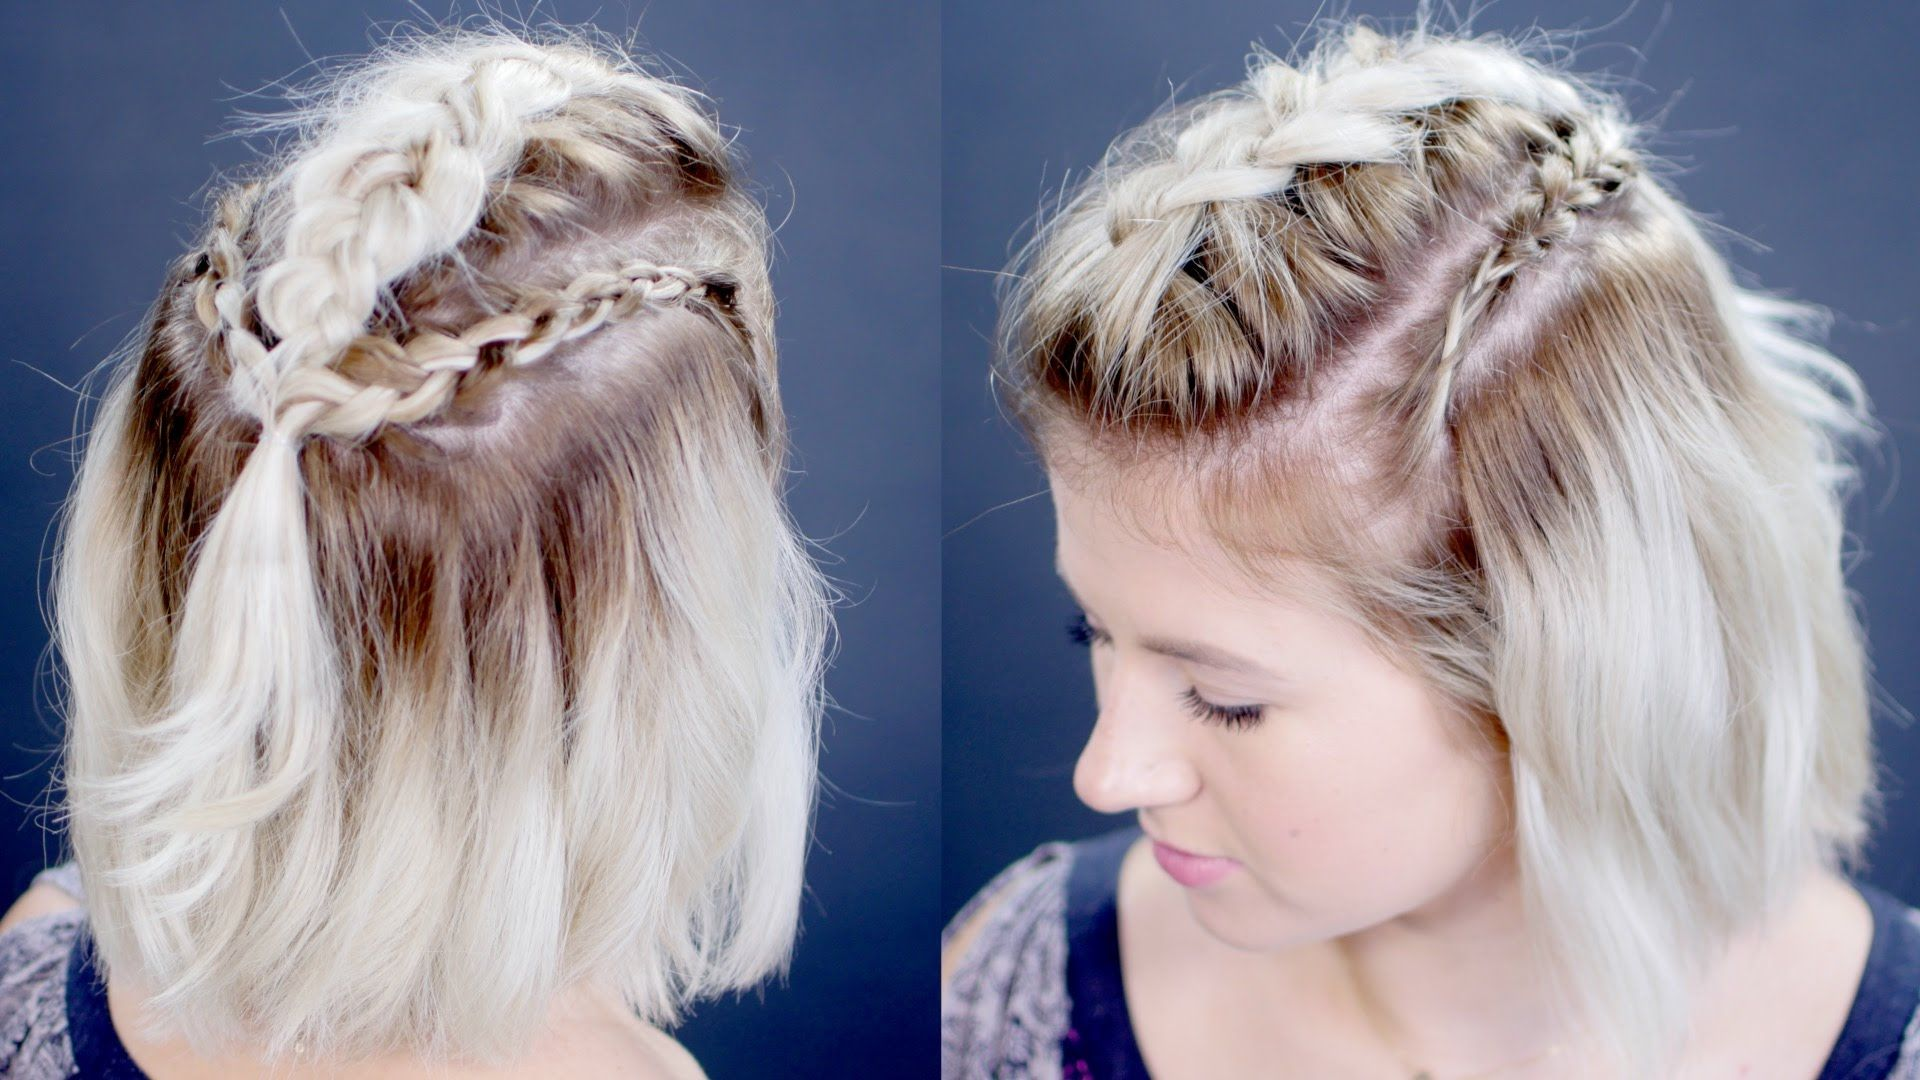 want to get viking braids but only have short hair? in this